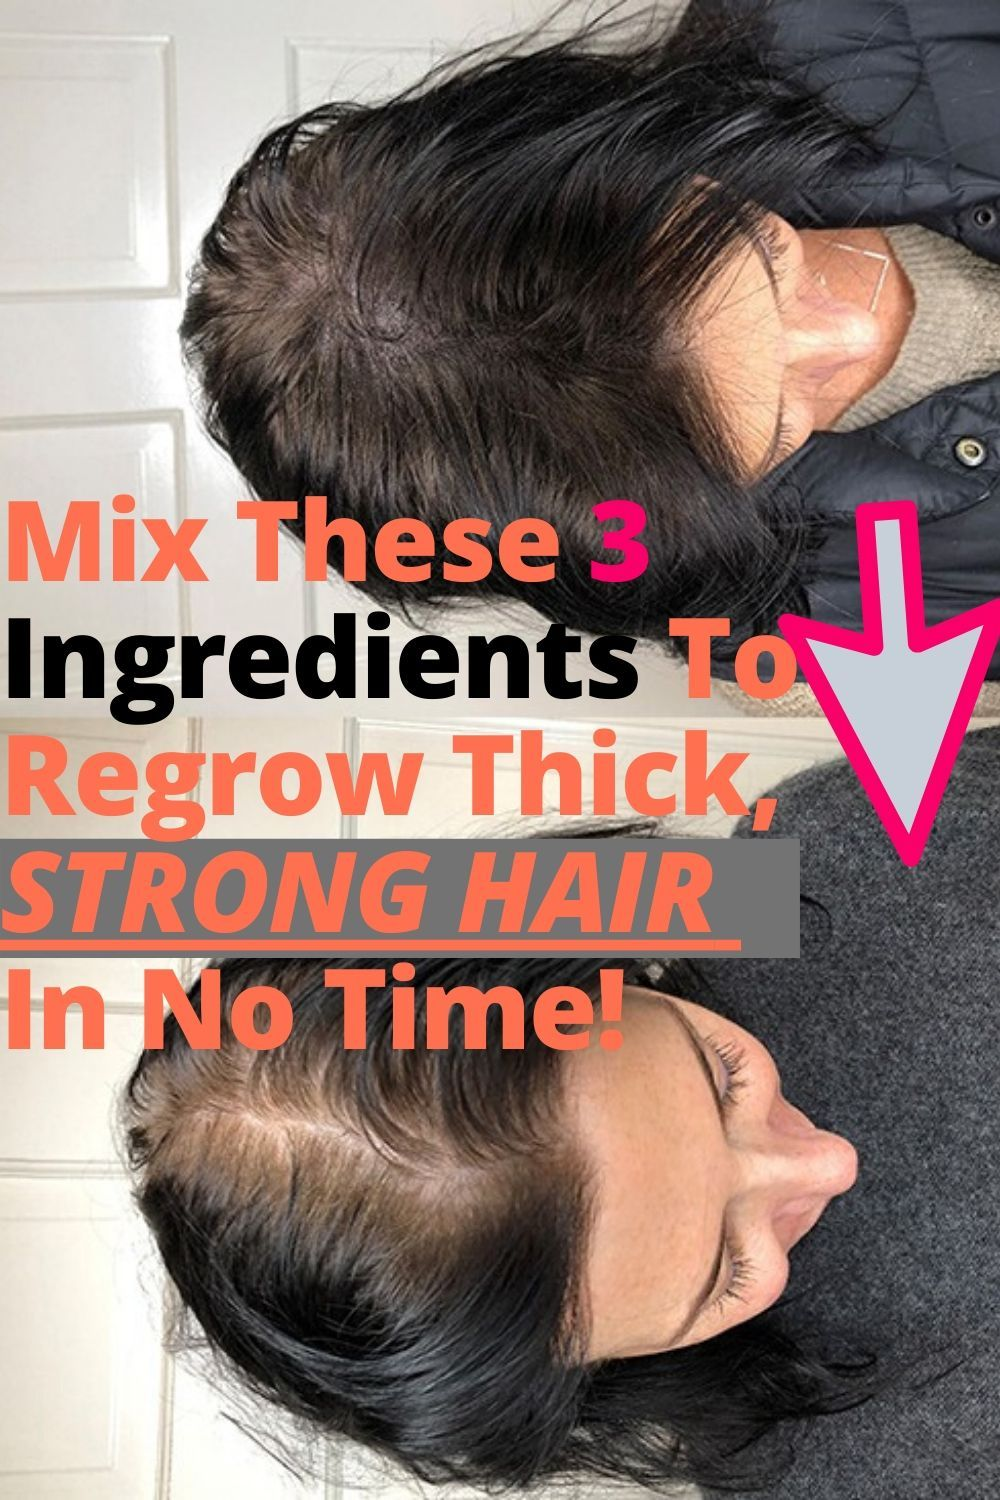 Mix These 3 Ingredients To Regrow Thick, Strong Hair In No